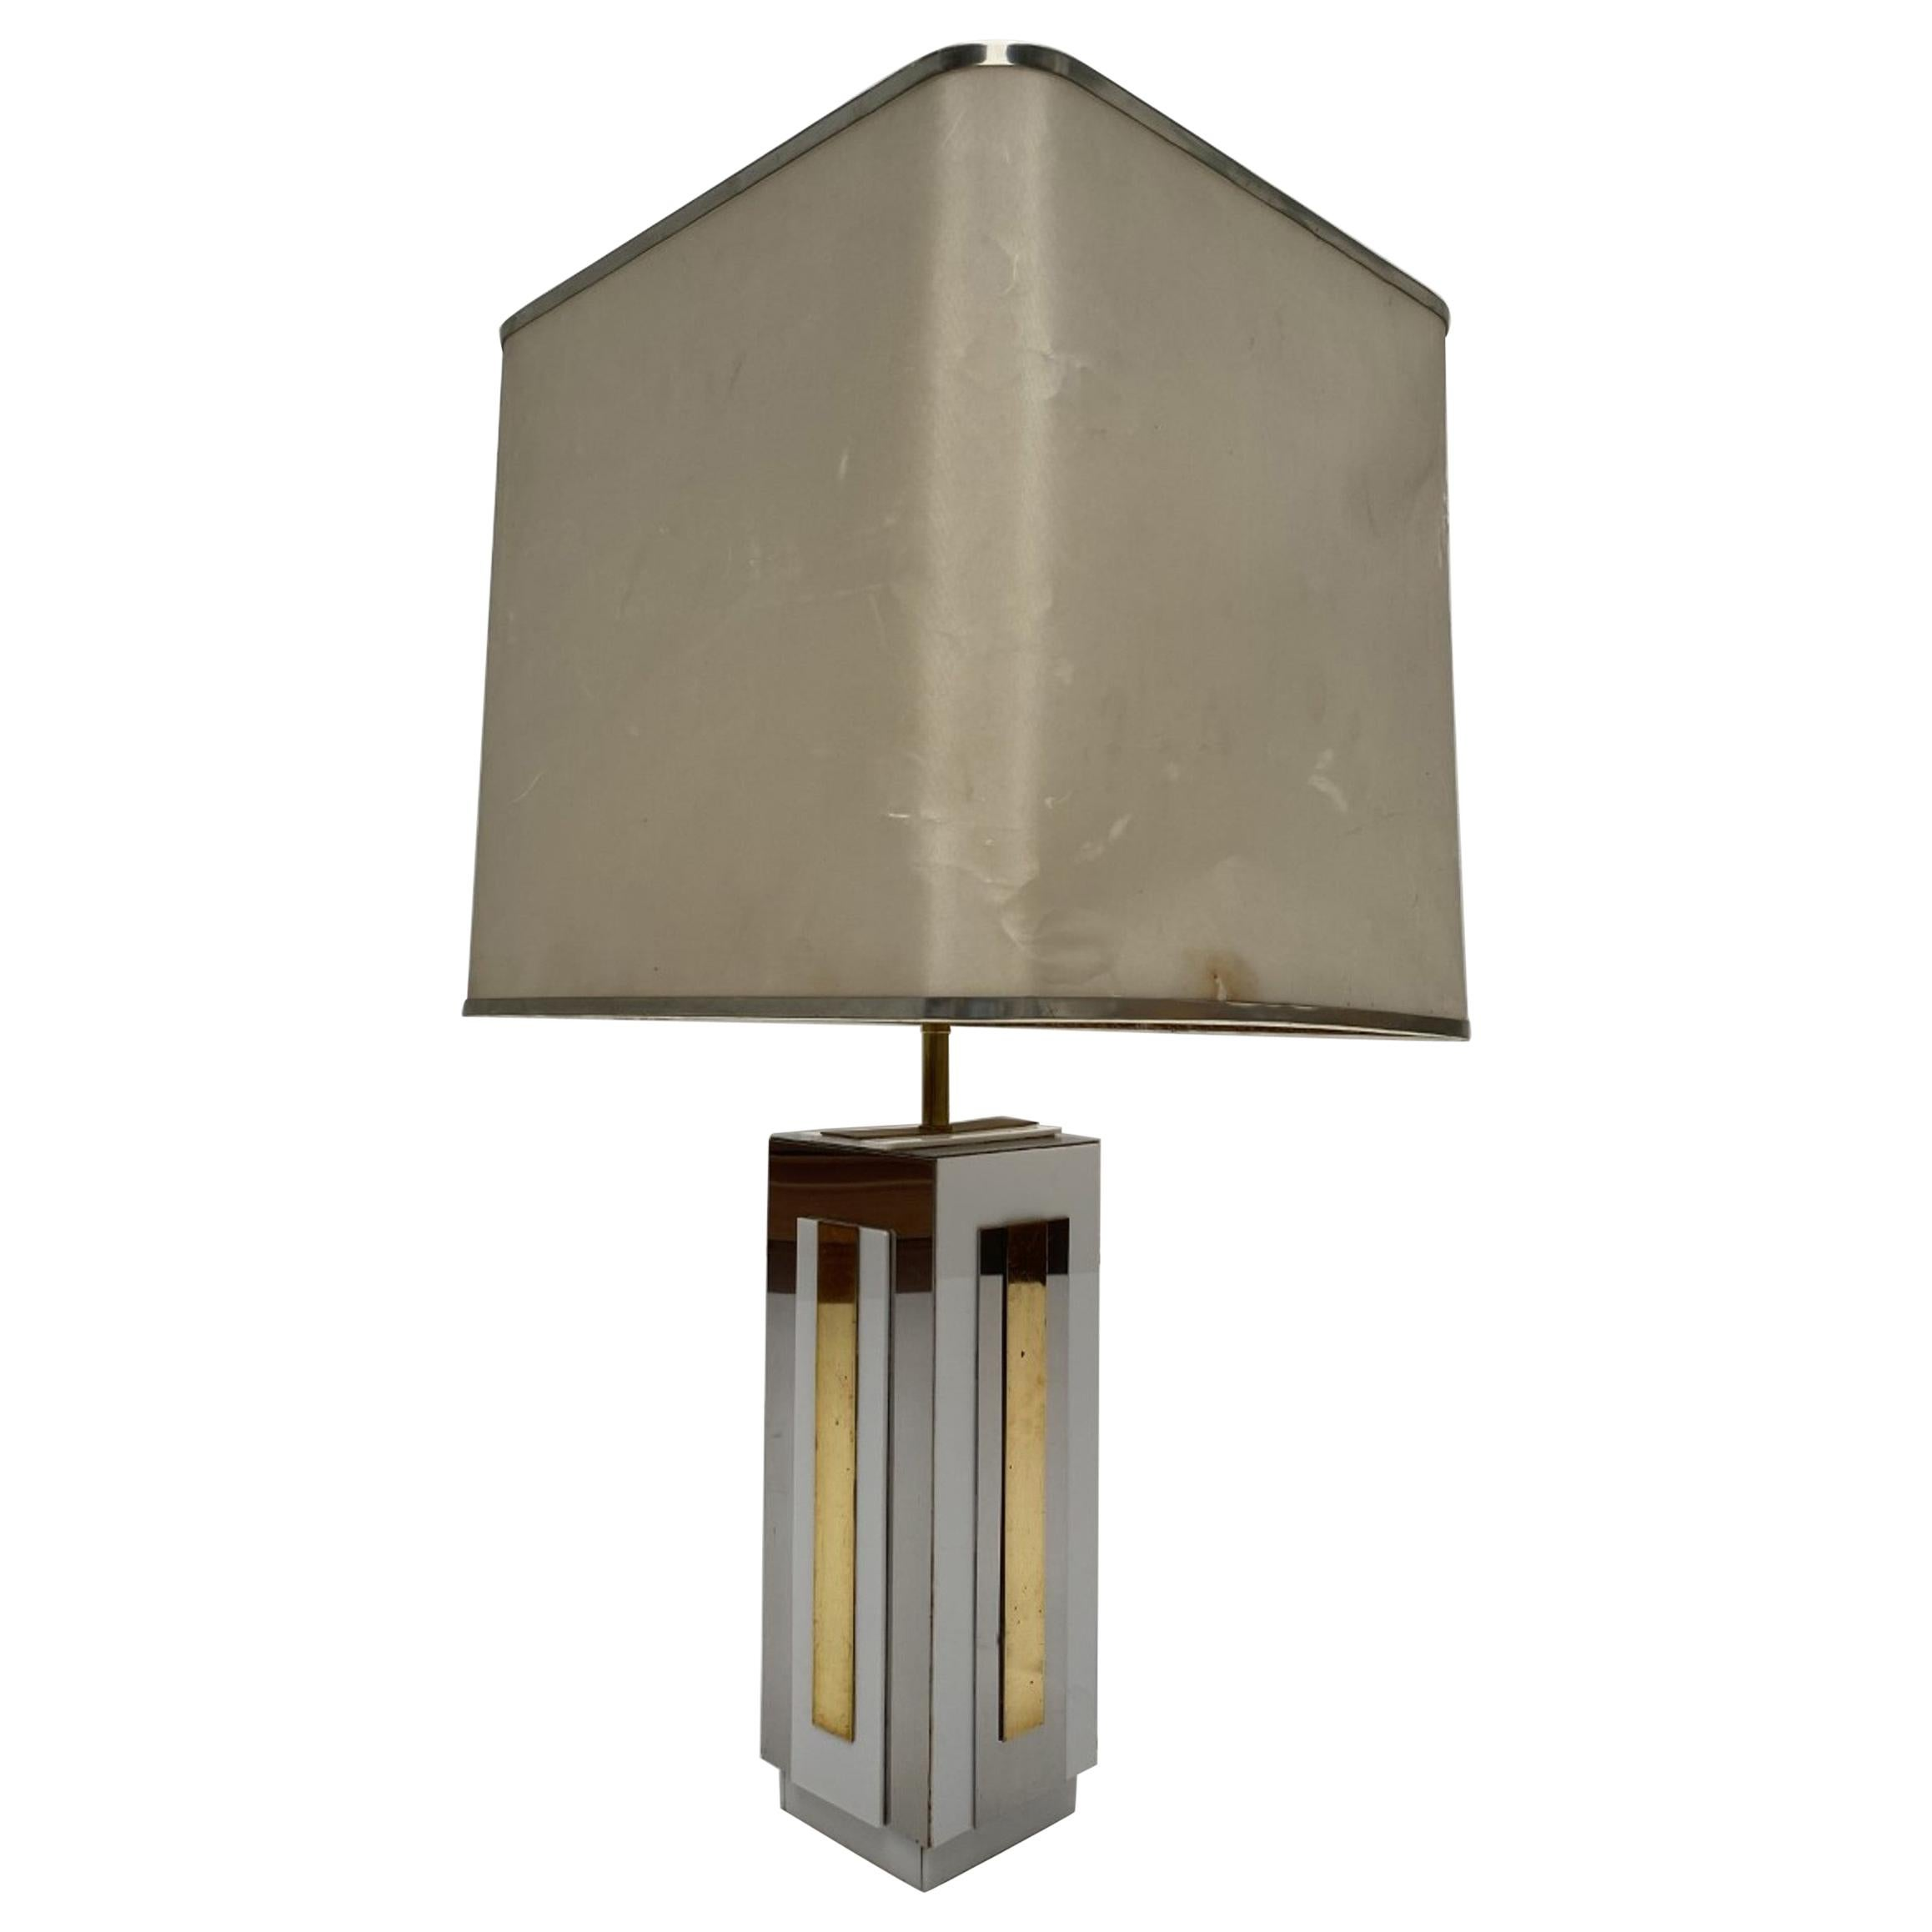 Sculptural Relief Table Lamp by Sculptor 'PH Jean' 1970 Brass Inox Lucite Signed